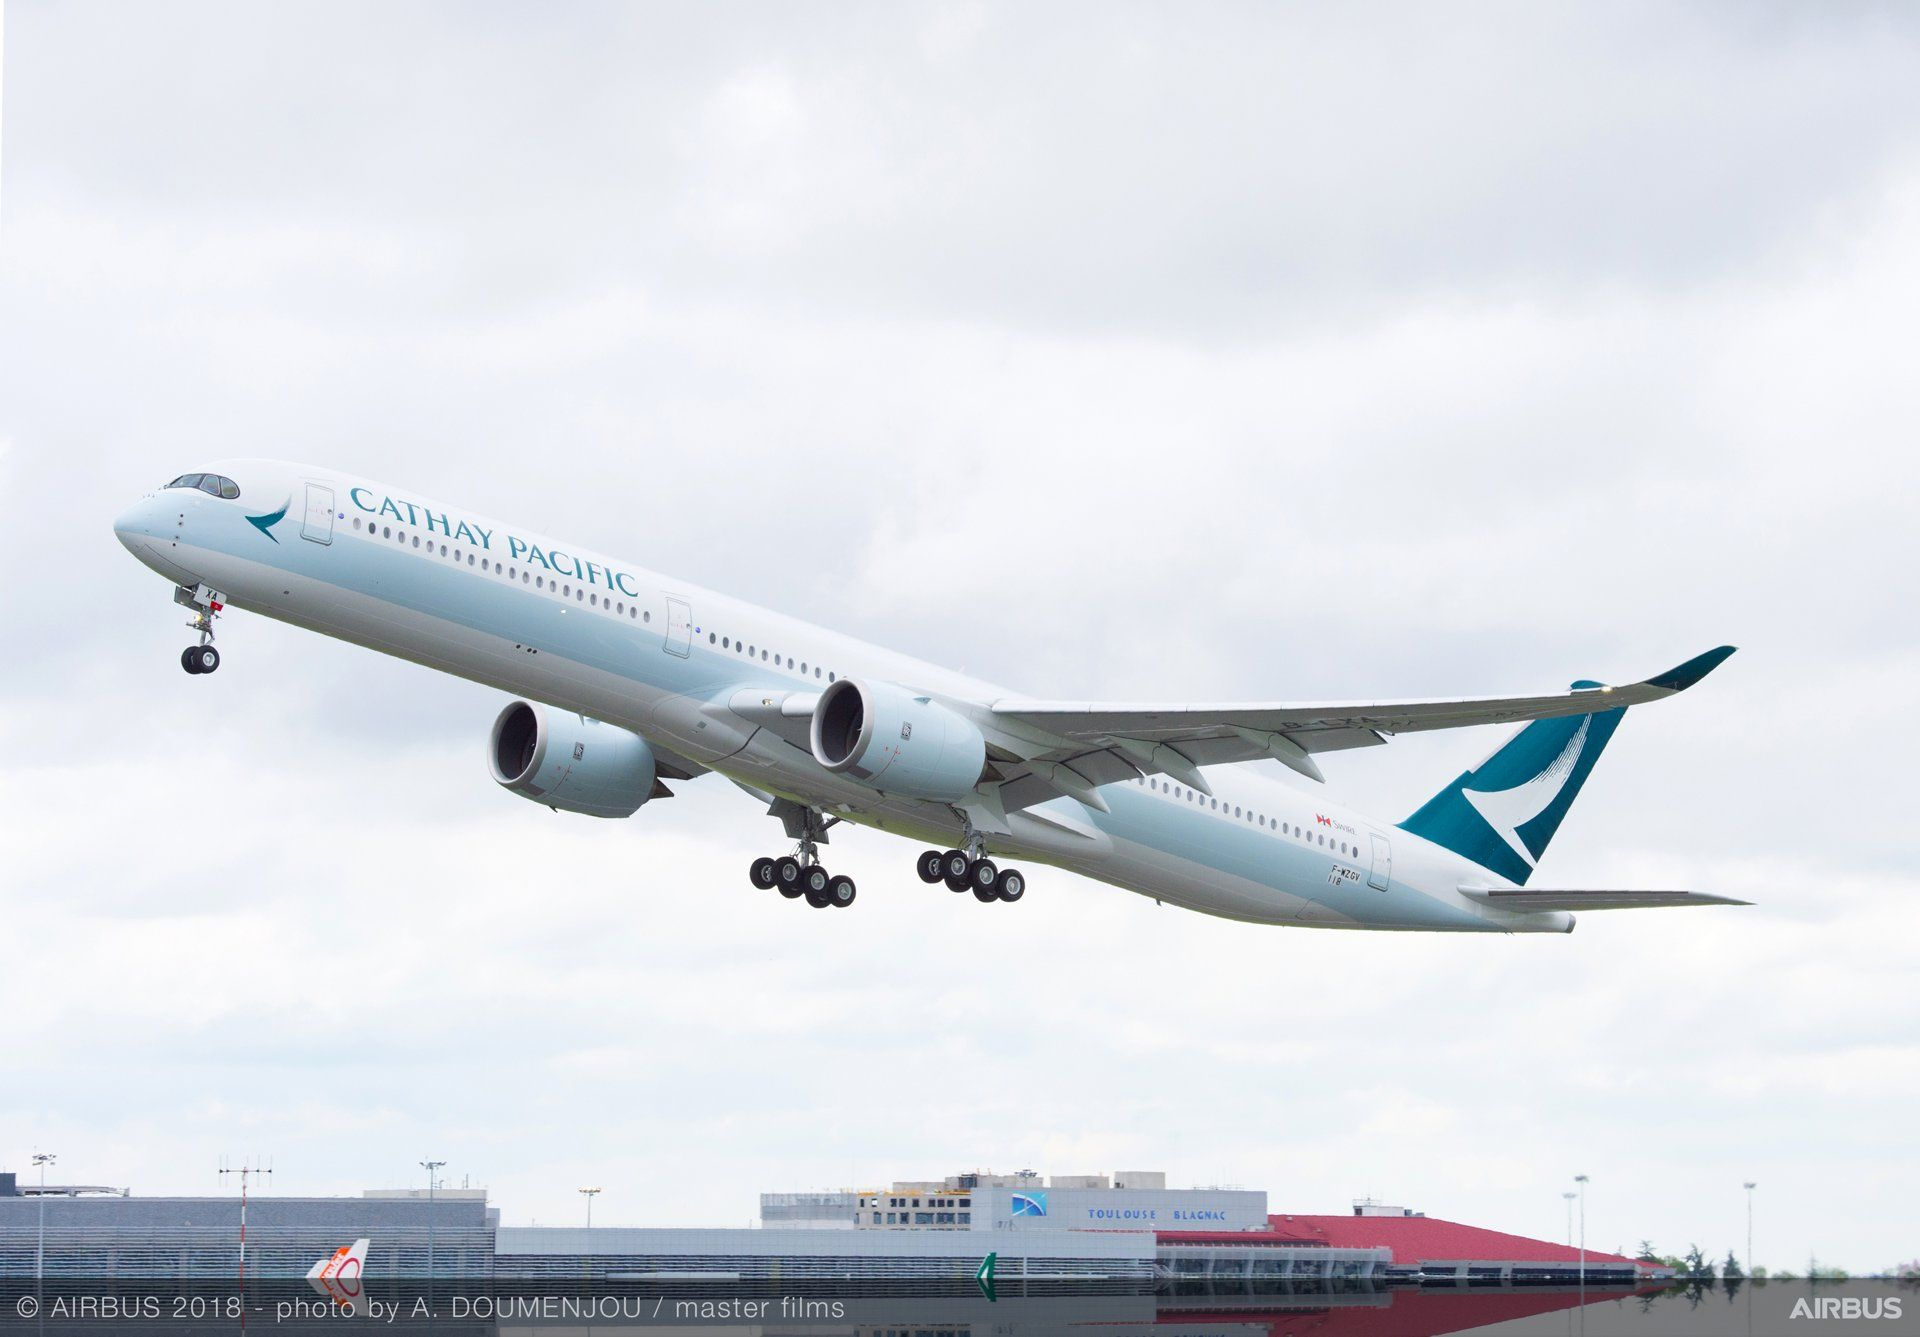 Airbus A350-1000 v barvách Cathay Pacific. Autor: Airbus